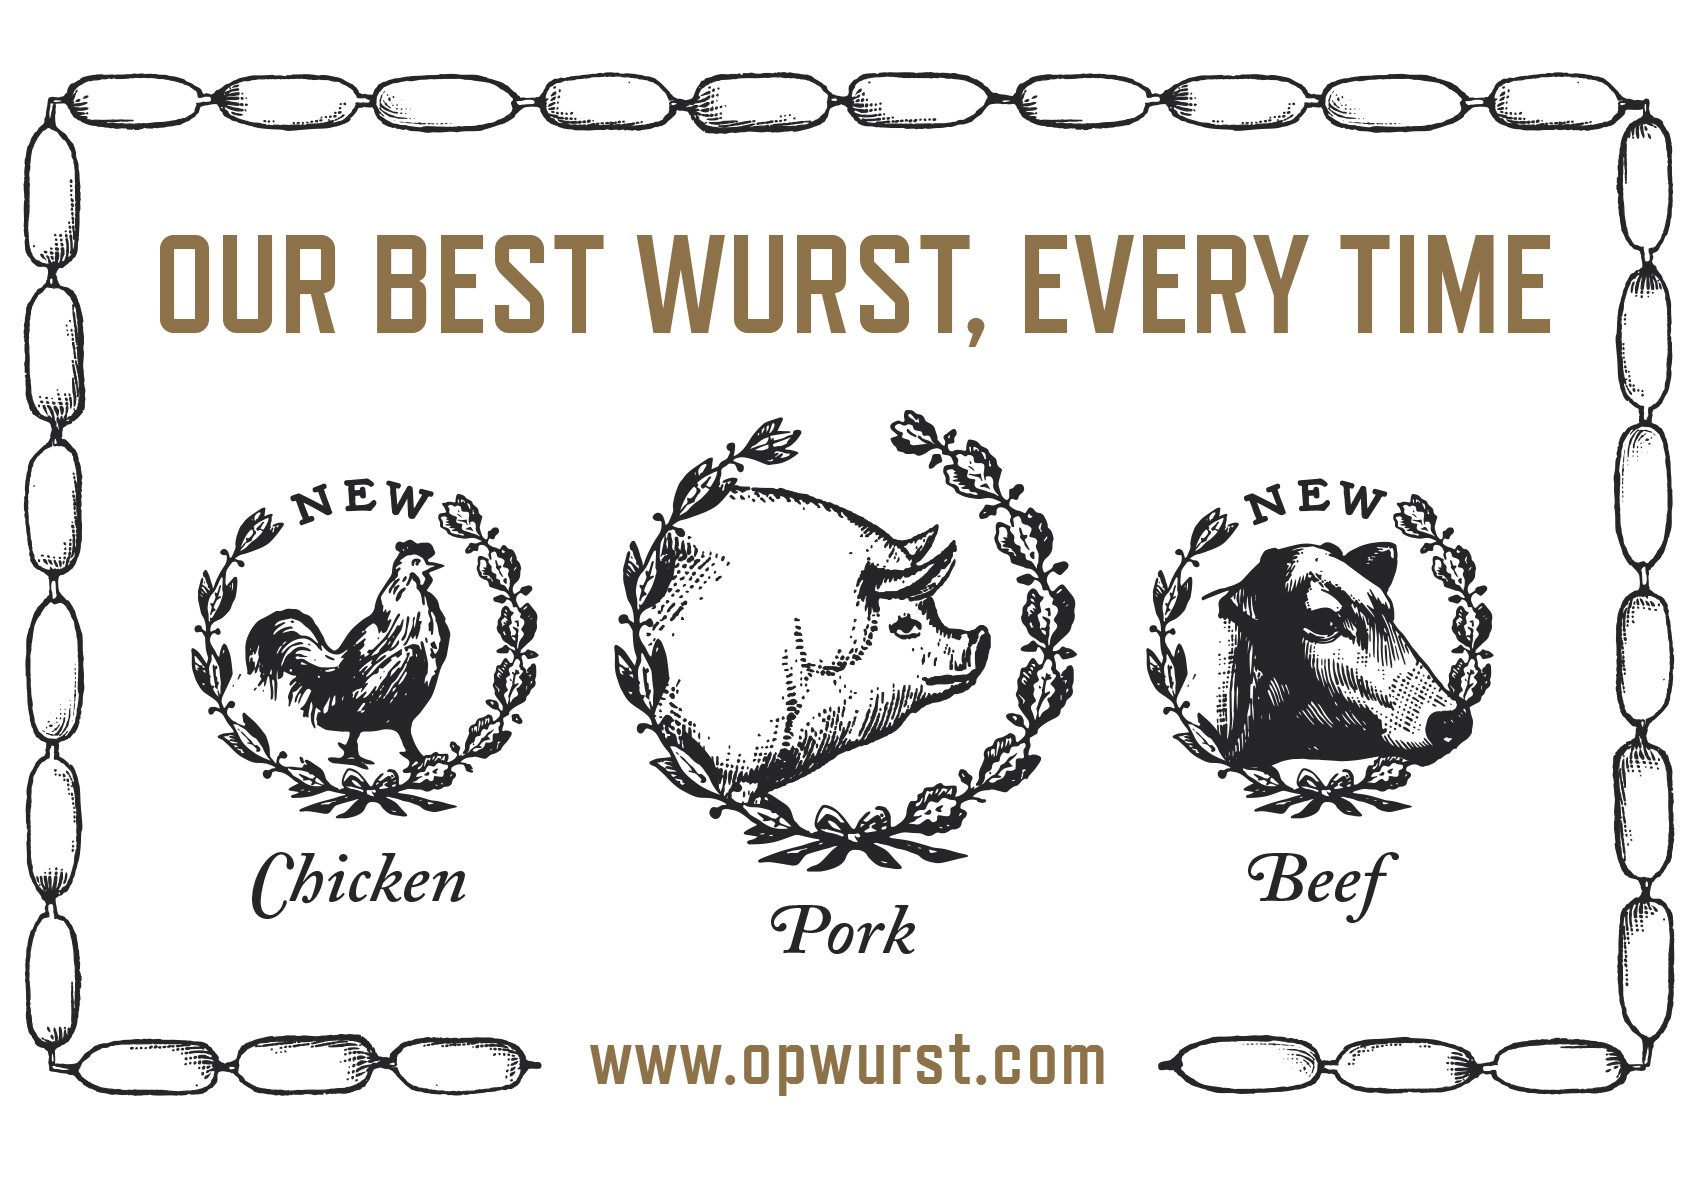 wreaths heralding chicken, pork and beef sausage selection at OP Wurst